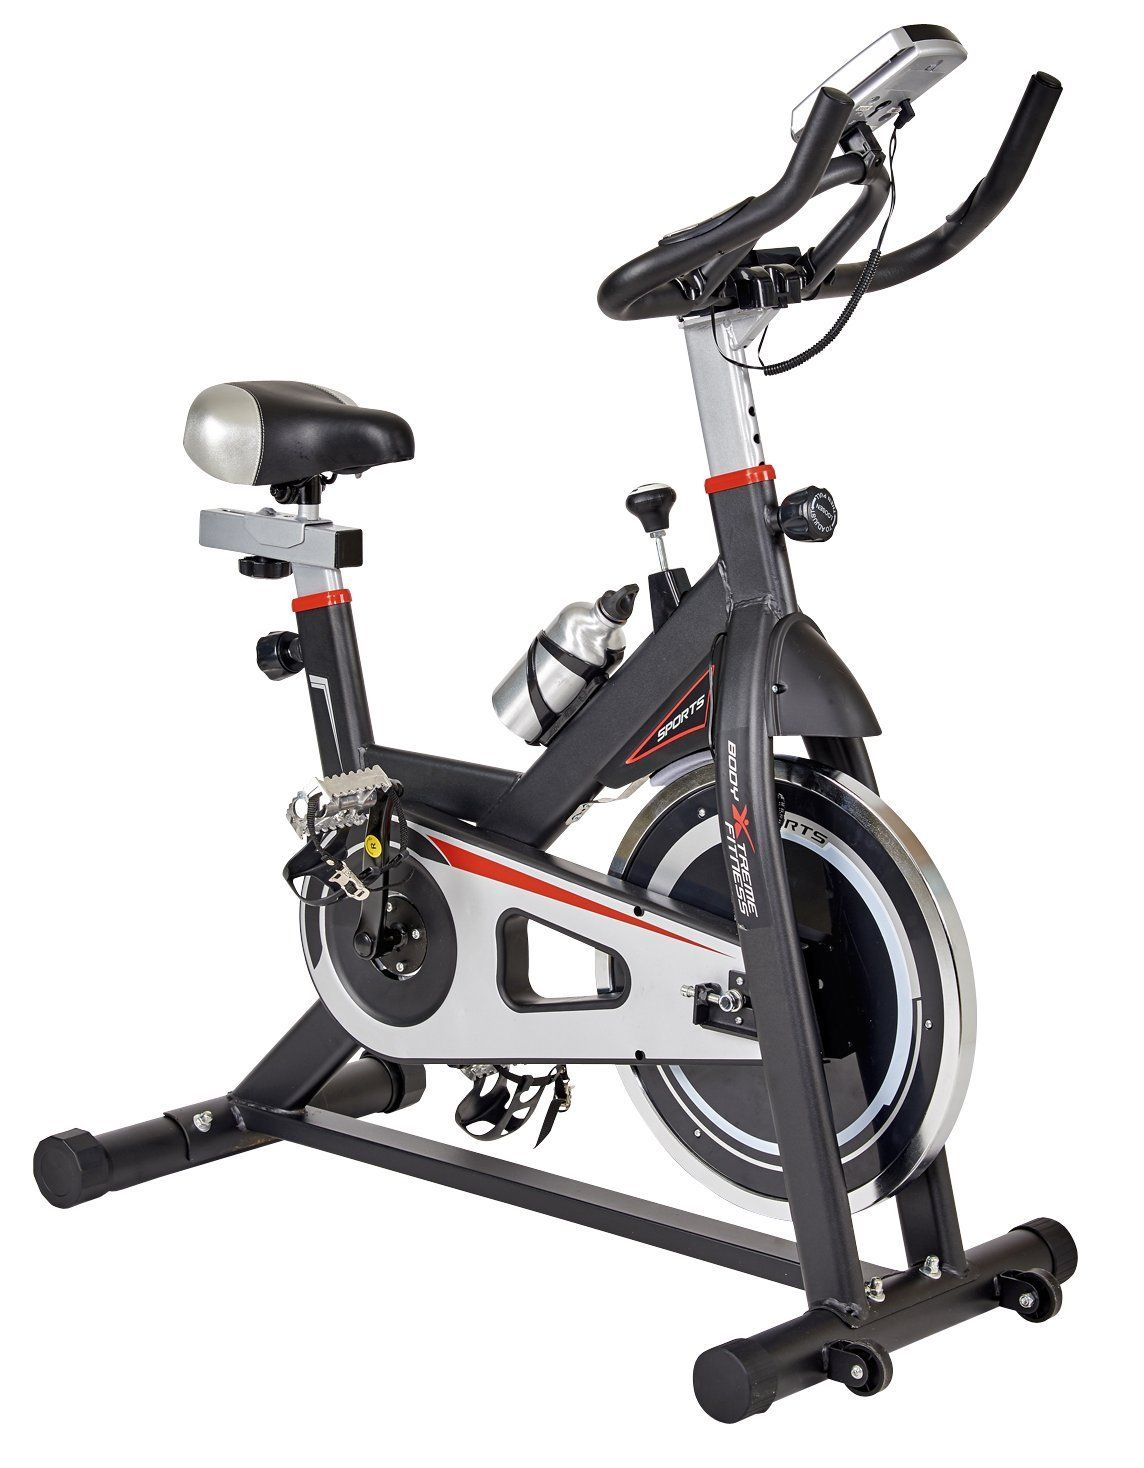 Body Xtreme Fitness Black Silver Home Exercise Bike Workout